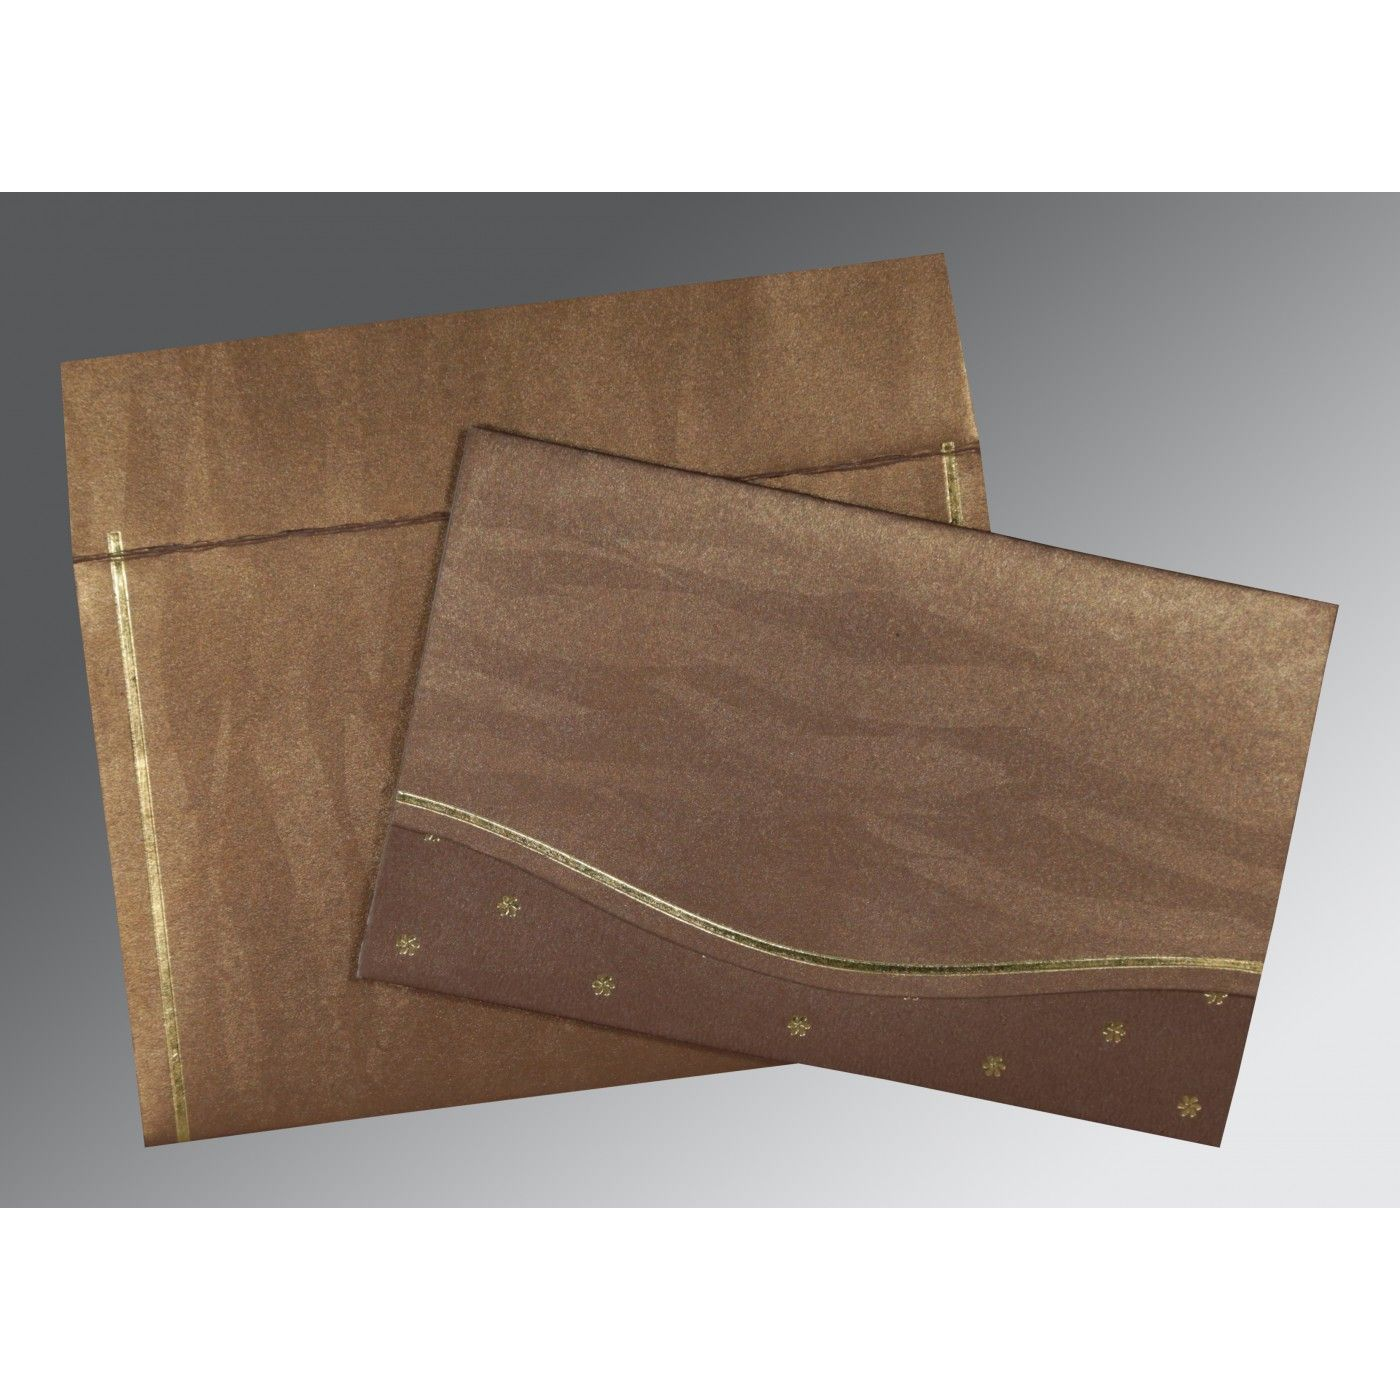 LIGHT BROWN SHIMMERY POCKET THEMED - FOIL STAMPED WEDDING CARD : CW-1413 - IndianWeddingCards